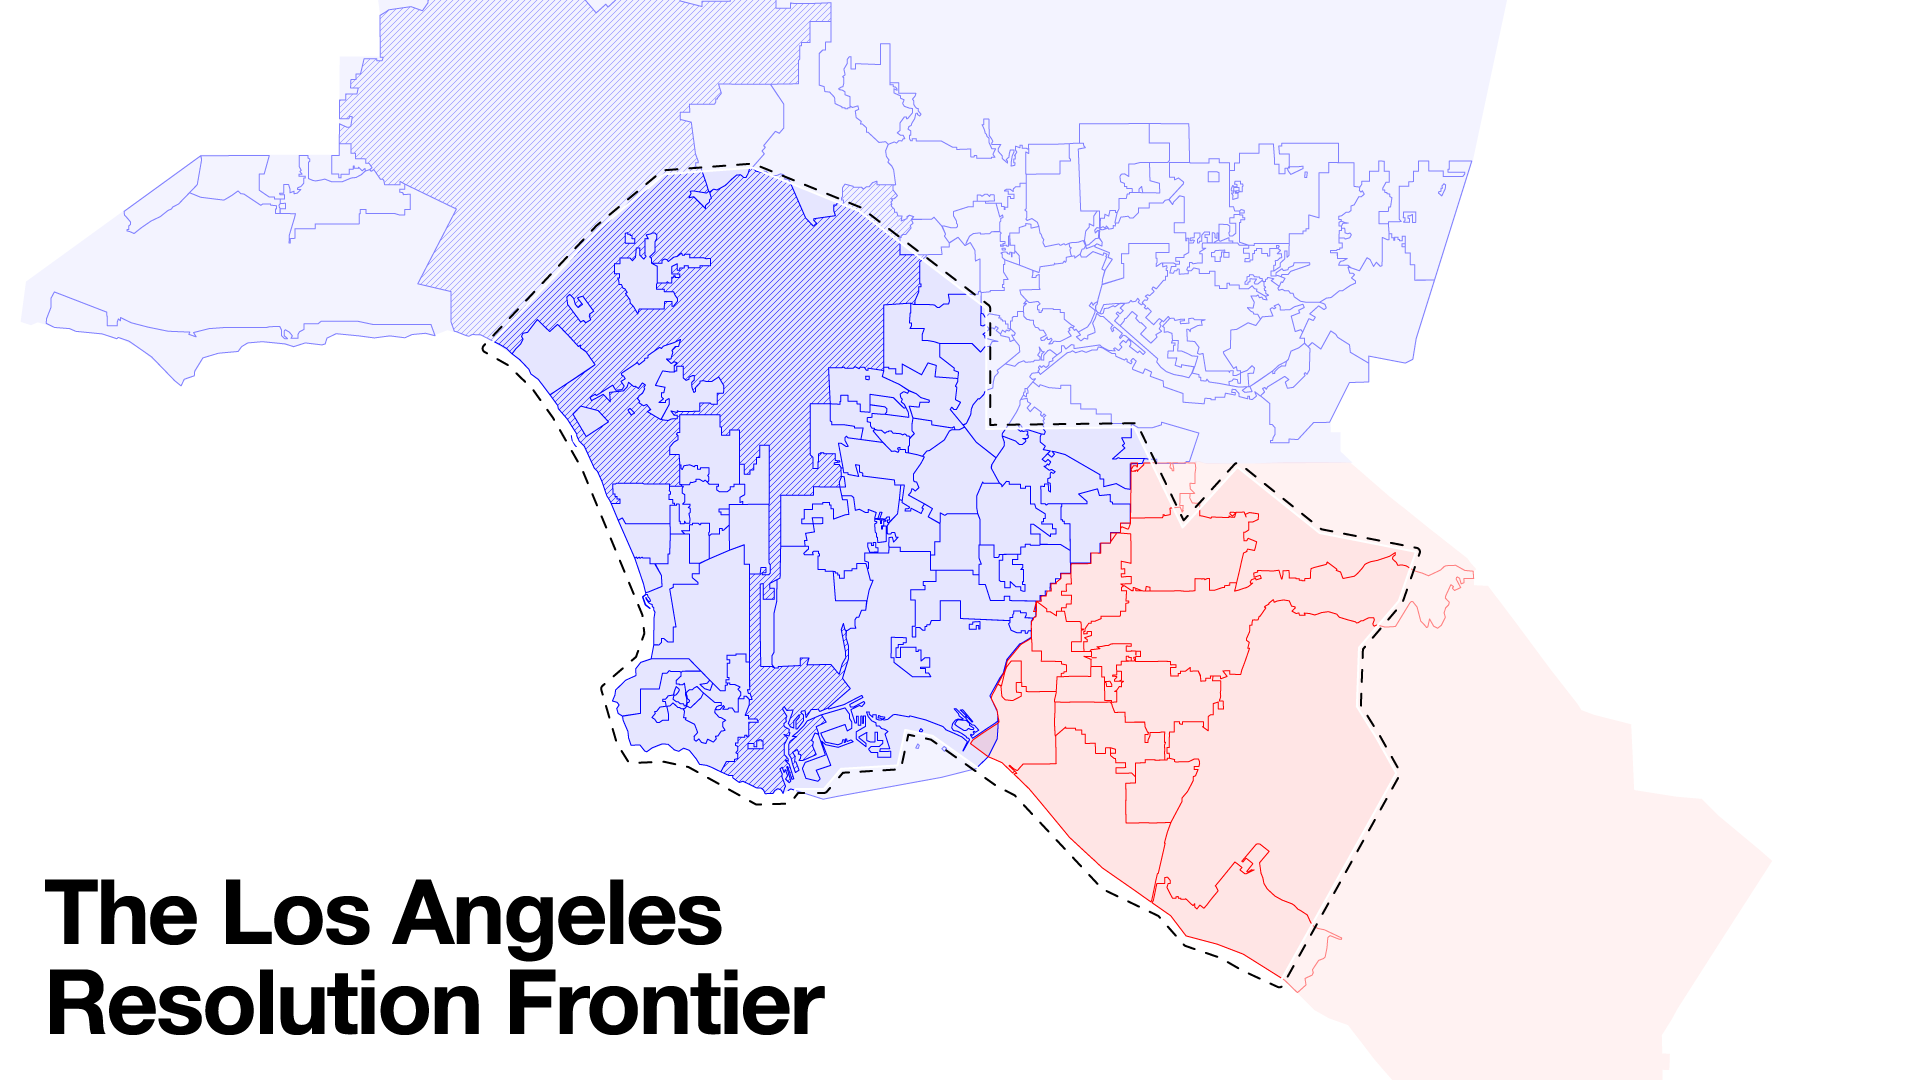 Google Earth's indifference to existing political and judicial boundaries. The photogrammetric model of Los Angeles (dashed line) straddles Los Angeles County (in blue) and Orange County (in red), and its edge slices through no fewer than 11 Los Angeles neighborhoods and 27 cities in Southern California.